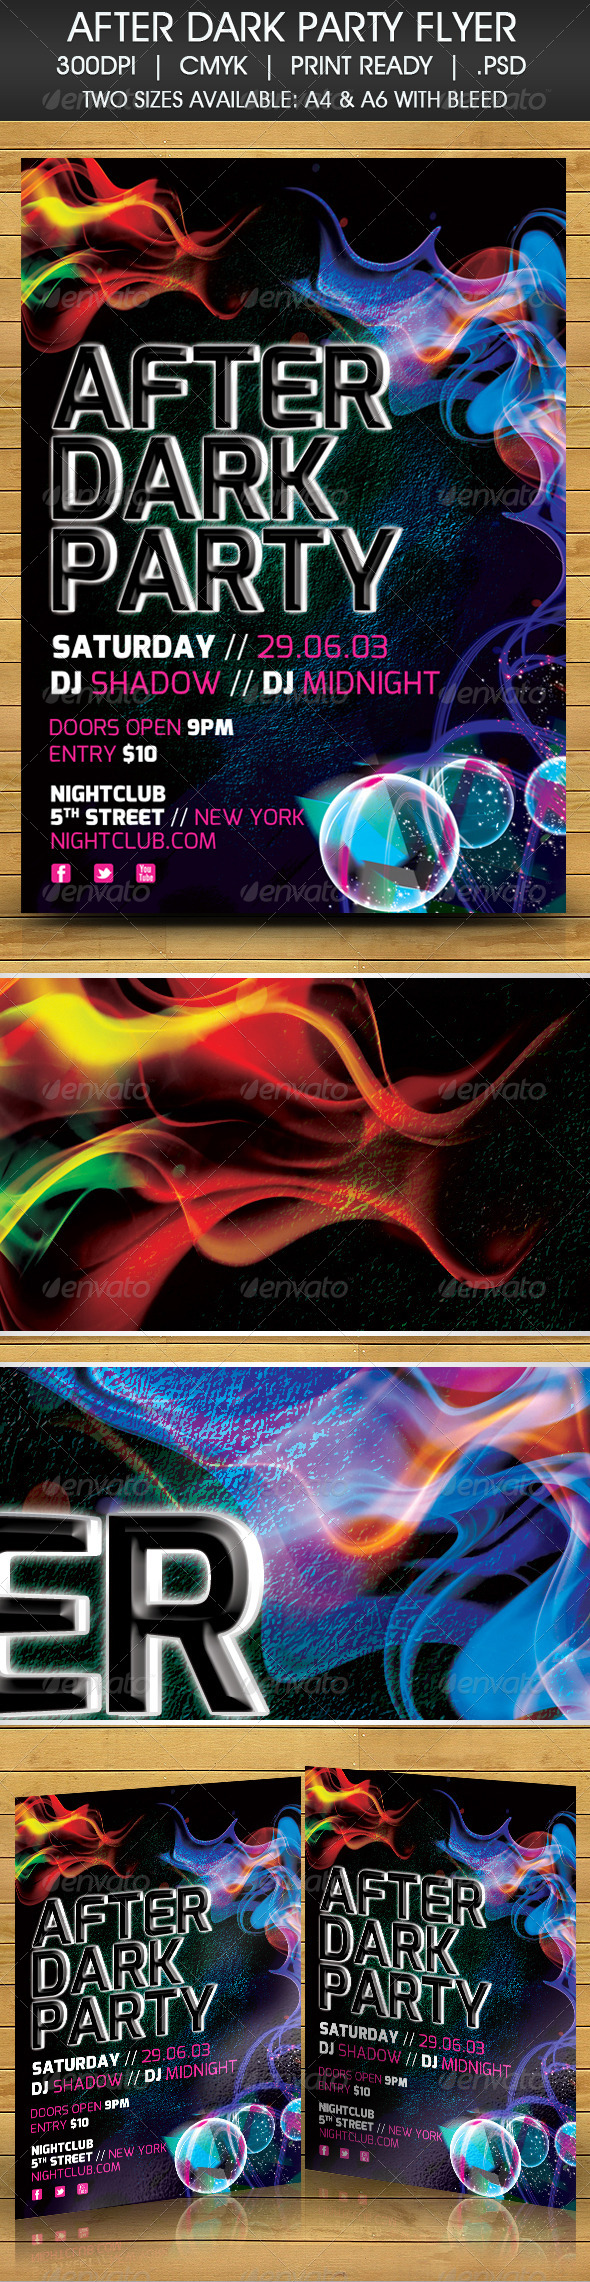 GraphicRiver After Dark Party Flyer 4343204